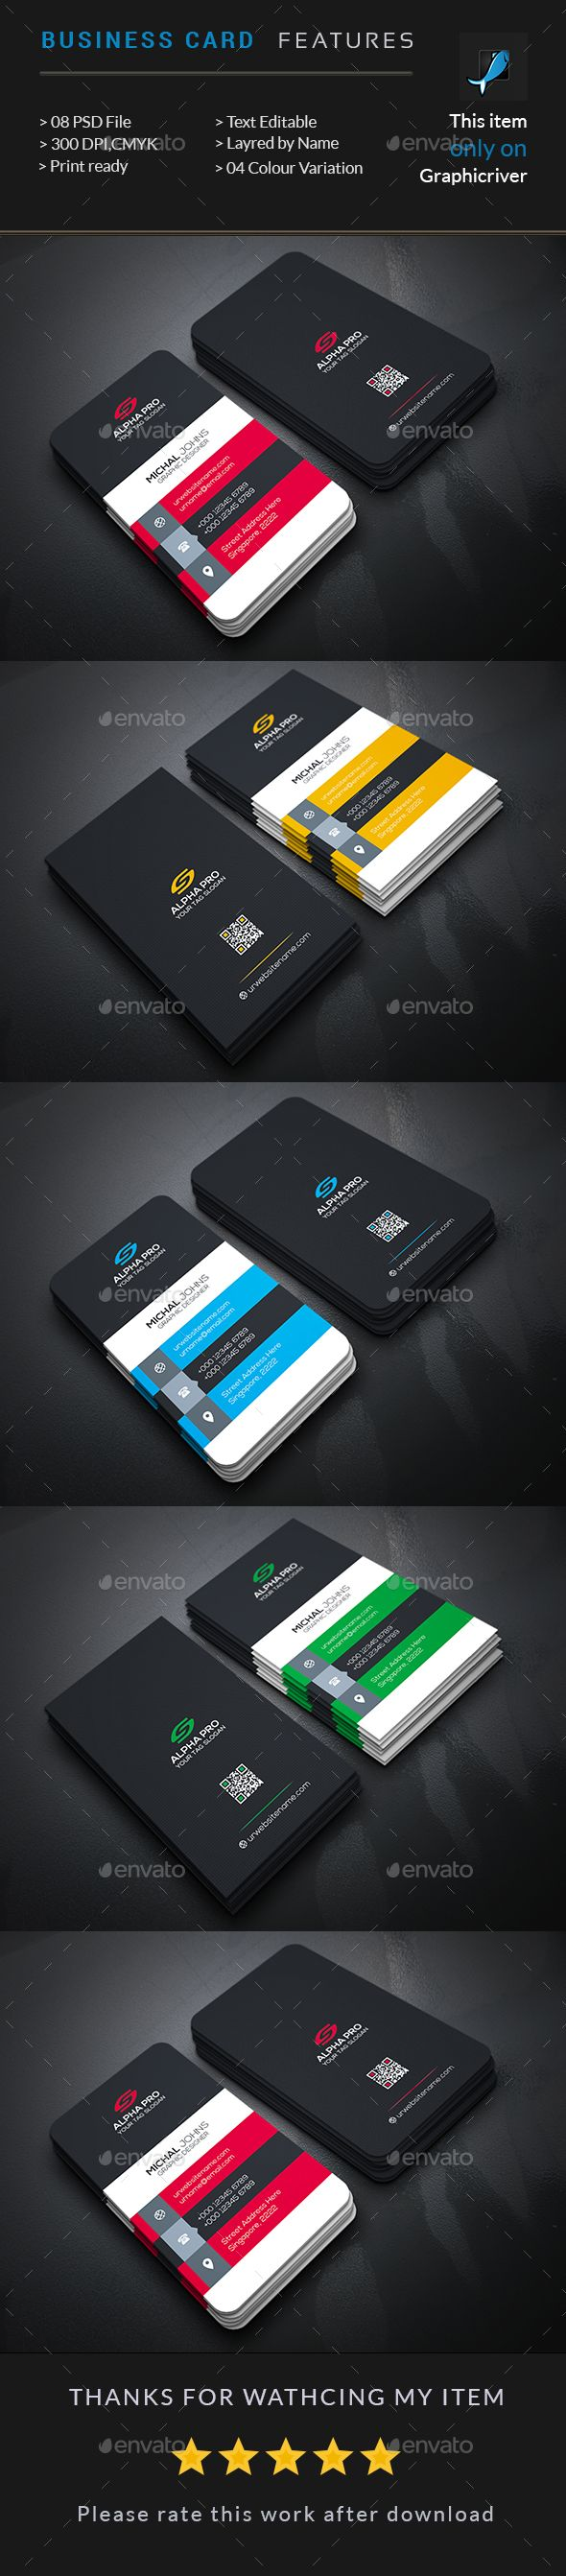 Business Card — Photoshop PSD #personal #elegant • Available here → https://graphicriver.net/item/business-card/17673947?ref=pxcr